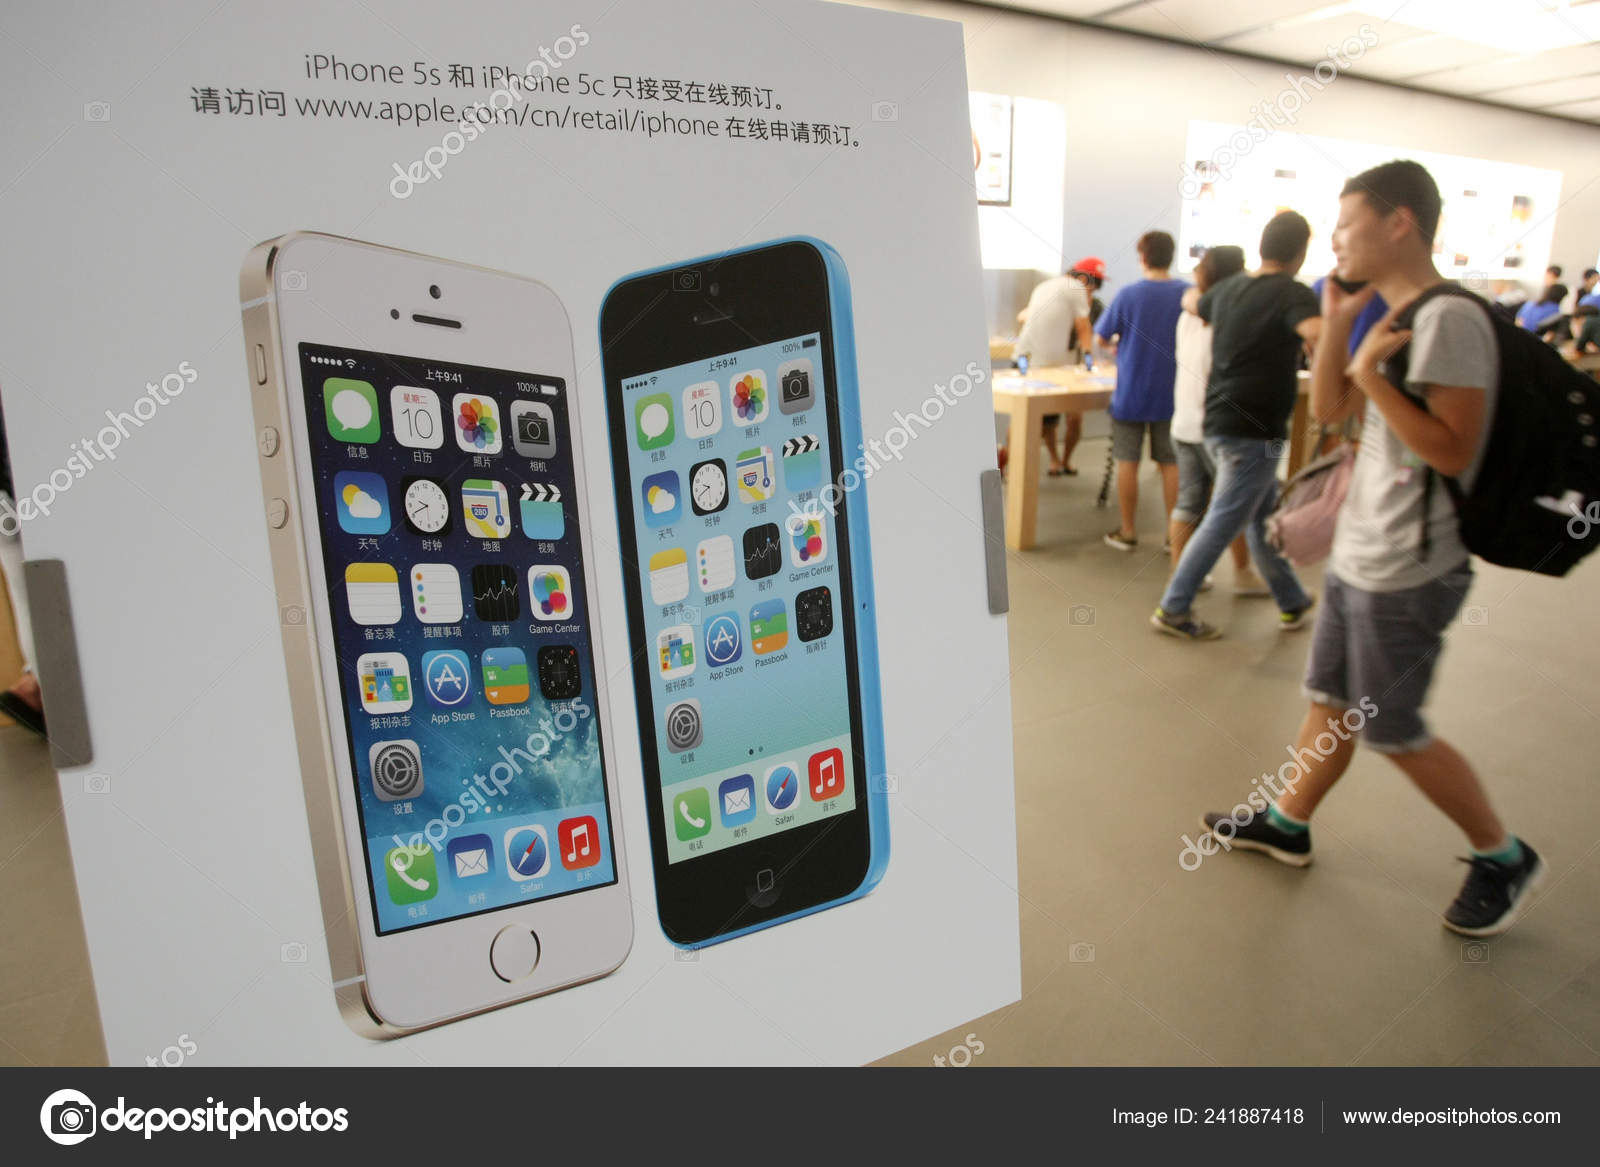 apple store iphone 5s download